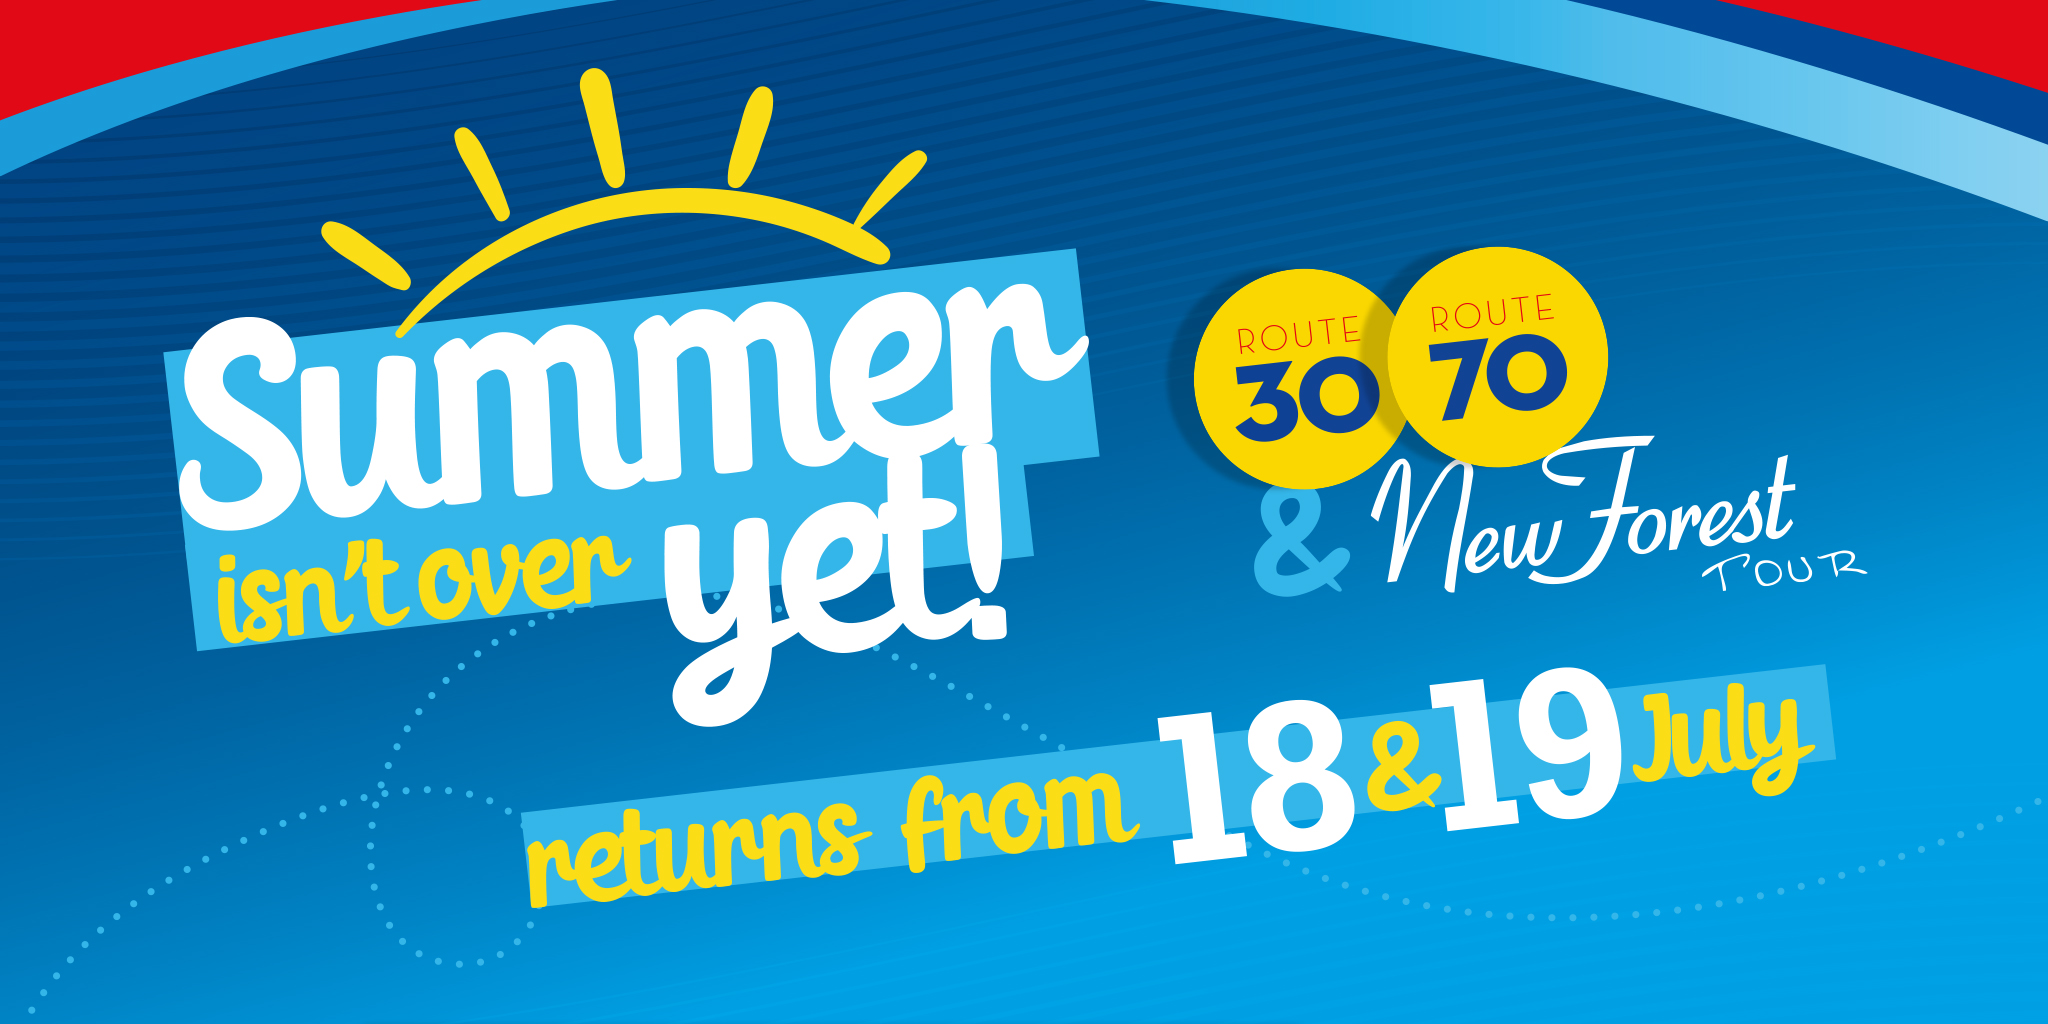 Image reading 'Summer isn't over yet! 30, 70 and New Forest Tour returns from 18th & 19th July!'